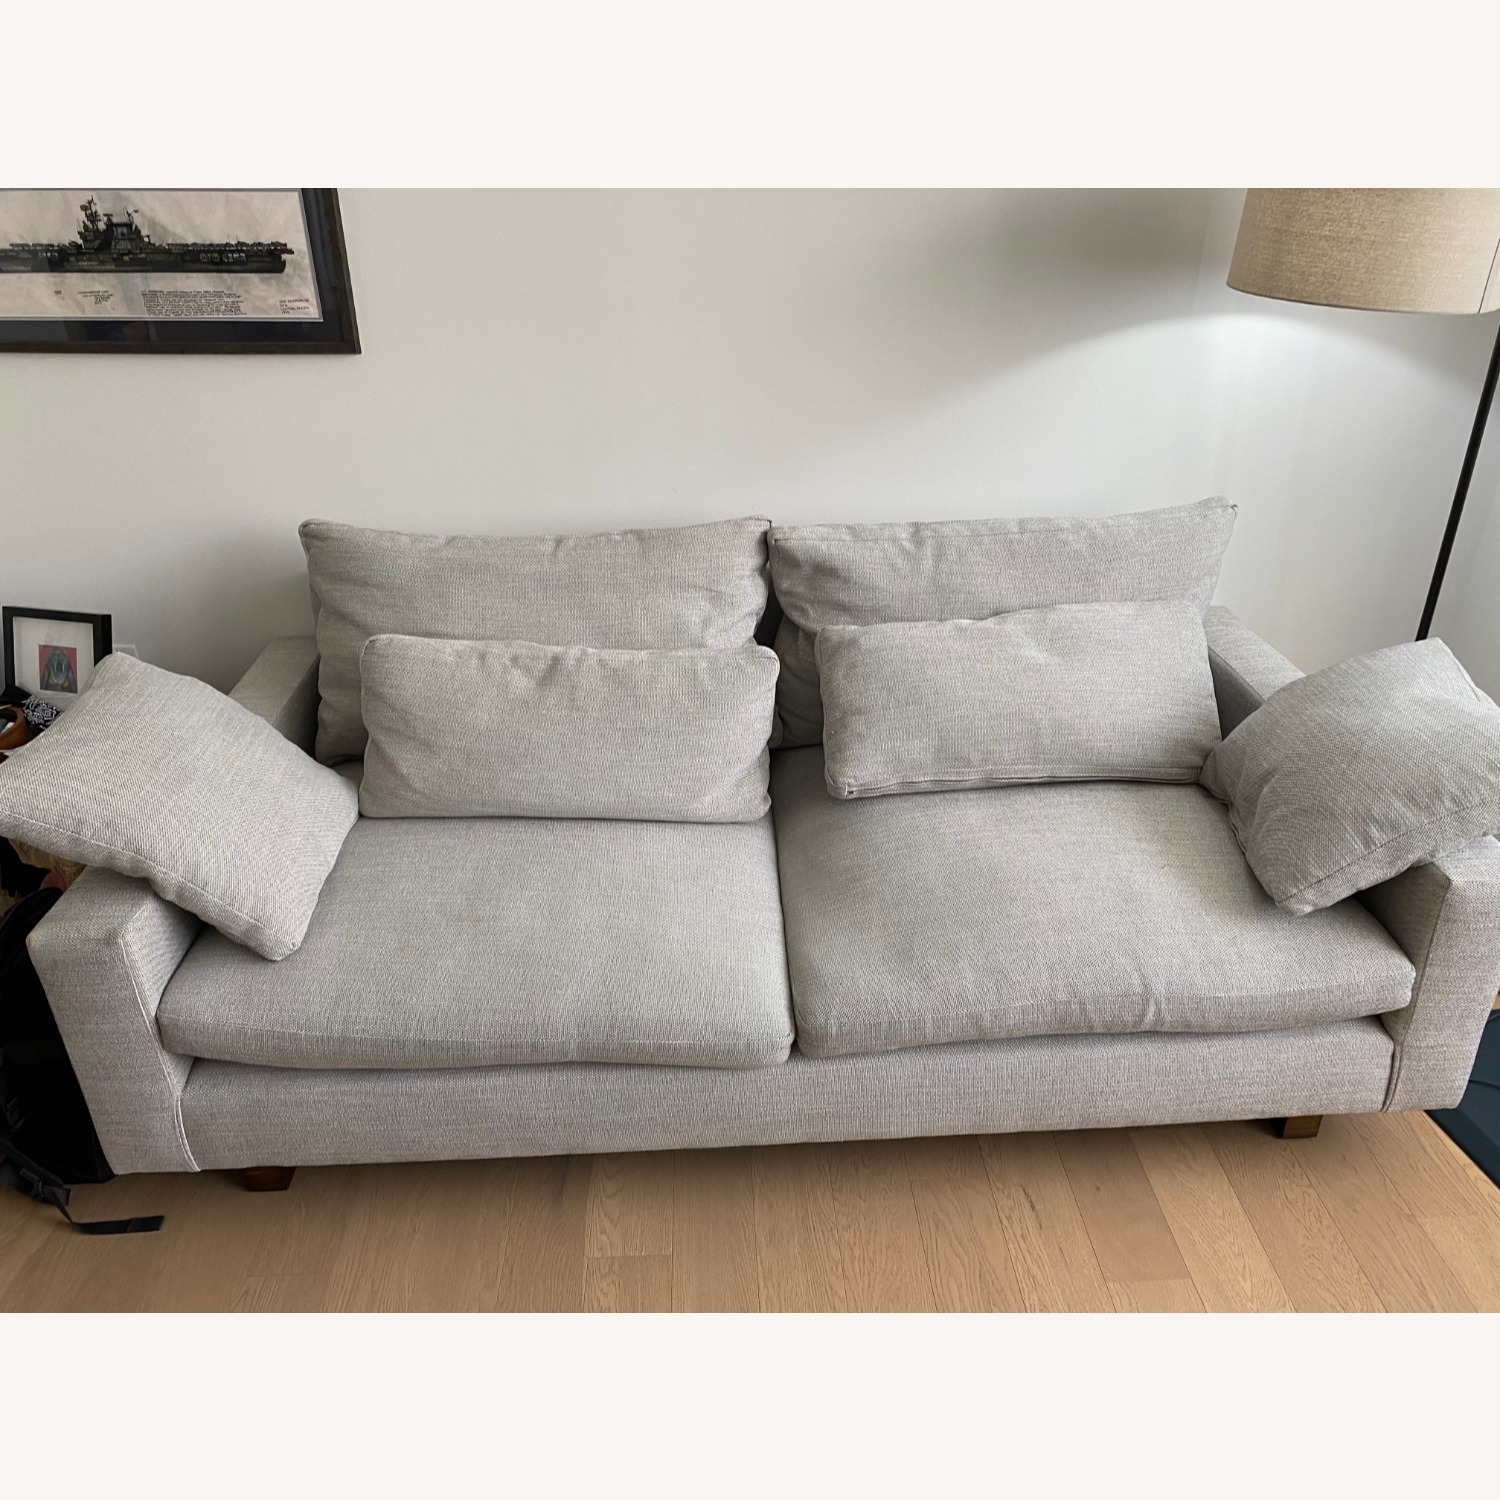 West Elm 2 Seat Couch - image-1